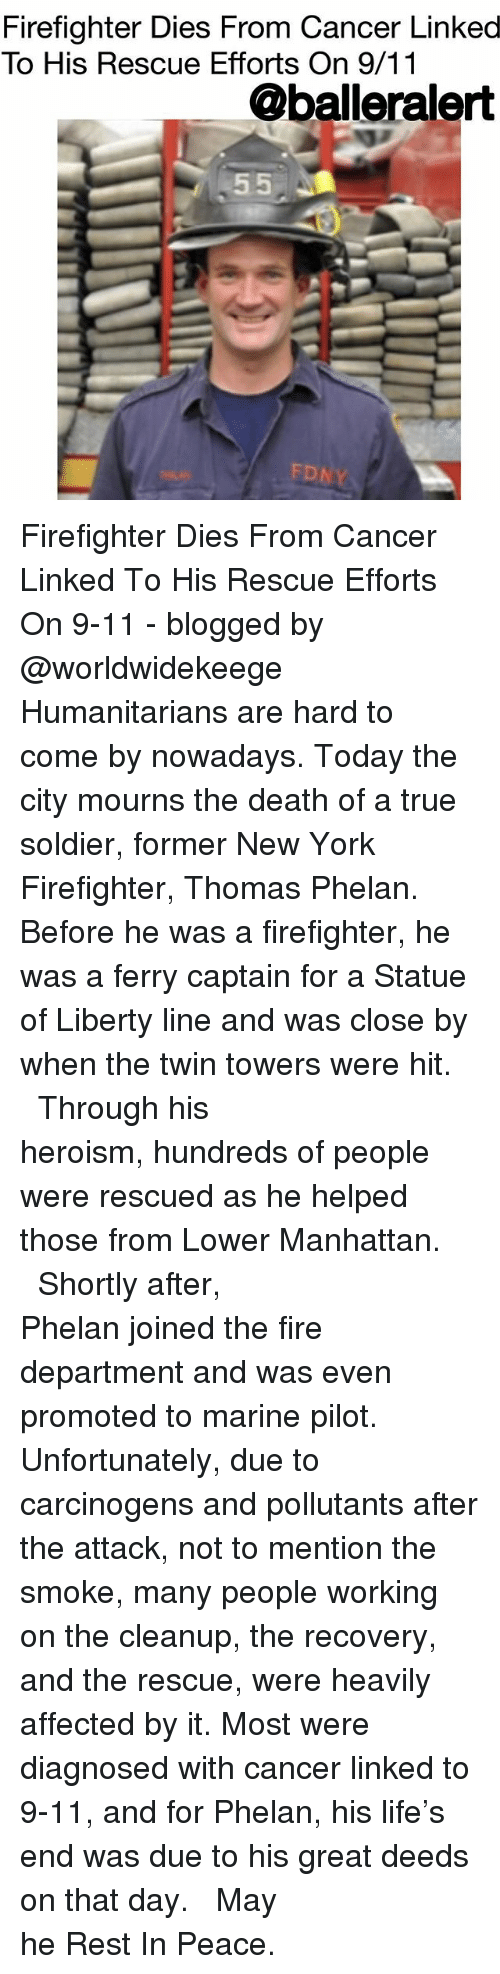 9/11, Fire, and Life: Firefighter Dies From Cancer Linked  To His Rescue Efforts On 9/11  @balleralert  FD Firefighter Dies From Cancer Linked To His Rescue Efforts On 9-11 - blogged by @worldwidekeege ⠀⠀⠀⠀⠀⠀⠀⠀⠀ ⠀⠀⠀⠀⠀⠀⠀⠀⠀ Humanitarians are hard to come by nowadays. Today the city mourns the death of a true soldier, former New York Firefighter, Thomas Phelan. Before he was a firefighter, he was a ferry captain for a Statue of Liberty line and was close by when the twin towers were hit. ⠀⠀⠀⠀⠀⠀⠀⠀⠀ ⠀⠀⠀⠀⠀⠀⠀⠀⠀ Through his heroism, hundreds of people were rescued as he helped those from Lower Manhattan. ⠀⠀⠀⠀⠀⠀⠀⠀⠀ ⠀⠀⠀⠀⠀⠀⠀⠀⠀ Shortly after, Phelan joined the fire department and was even promoted to marine pilot. Unfortunately, due to carcinogens and pollutants after the attack, not to mention the smoke, many people working on the cleanup, the recovery, and the rescue, were heavily affected by it. Most were diagnosed with cancer linked to 9-11, and for Phelan, his life's end was due to his great deeds on that day. ⠀⠀⠀⠀⠀⠀⠀⠀⠀ ⠀⠀⠀⠀⠀⠀⠀⠀⠀ May he Rest In Peace.